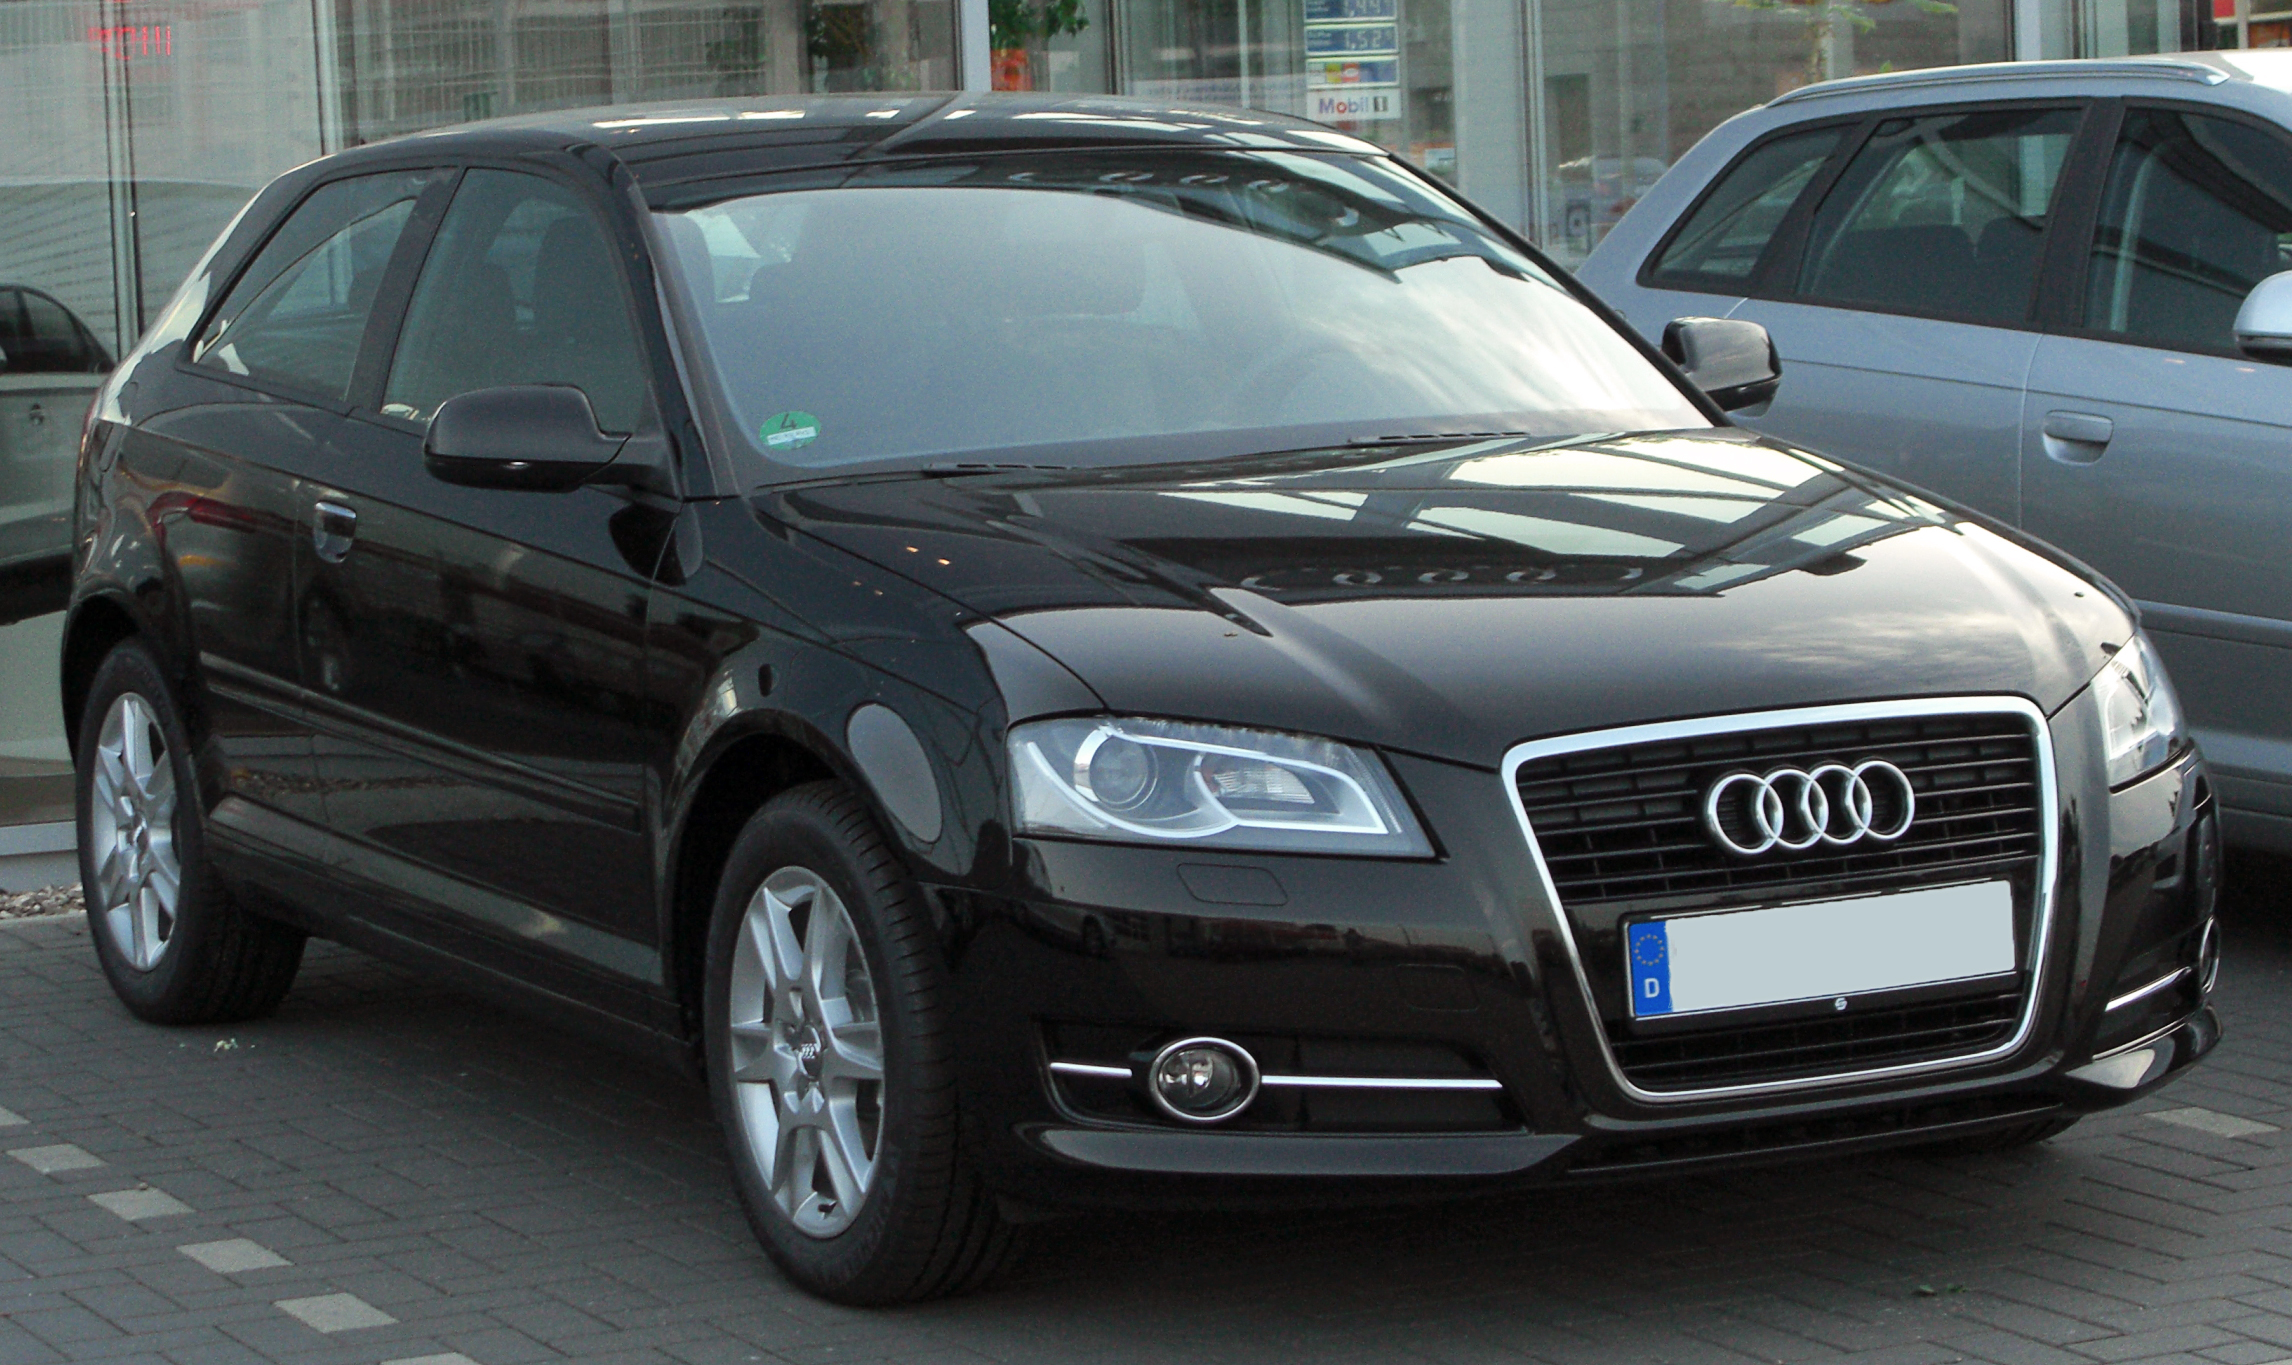 File:Audi A3 8P III. Facelift Front 20100710.jpg